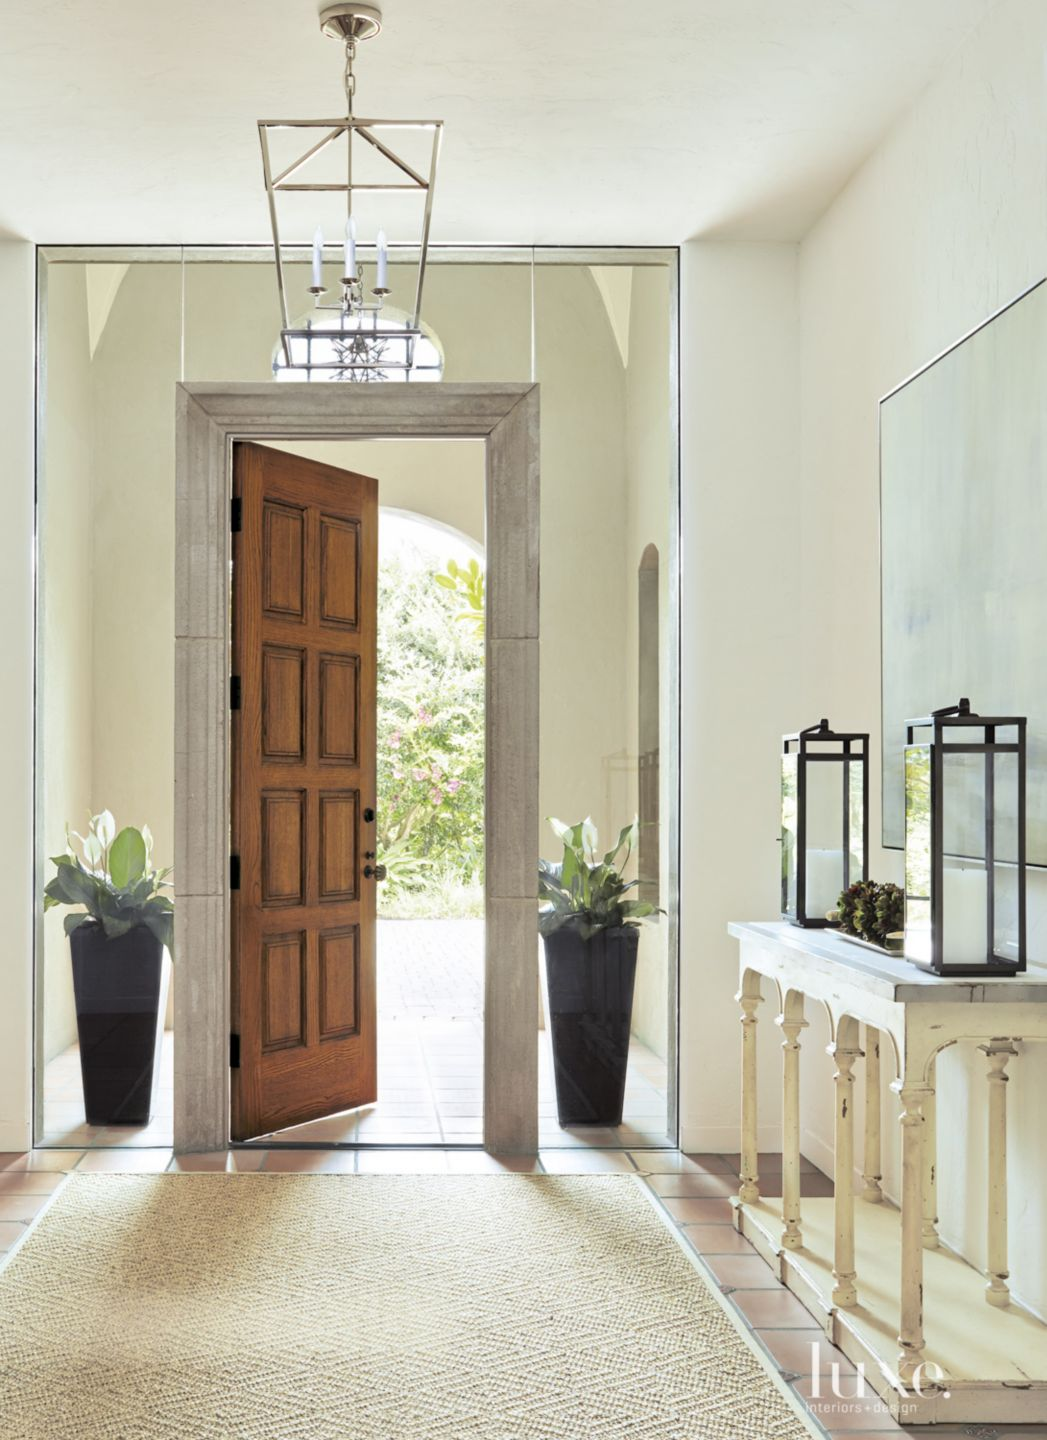 Traditional Cream Entry with Statement Light Fixture